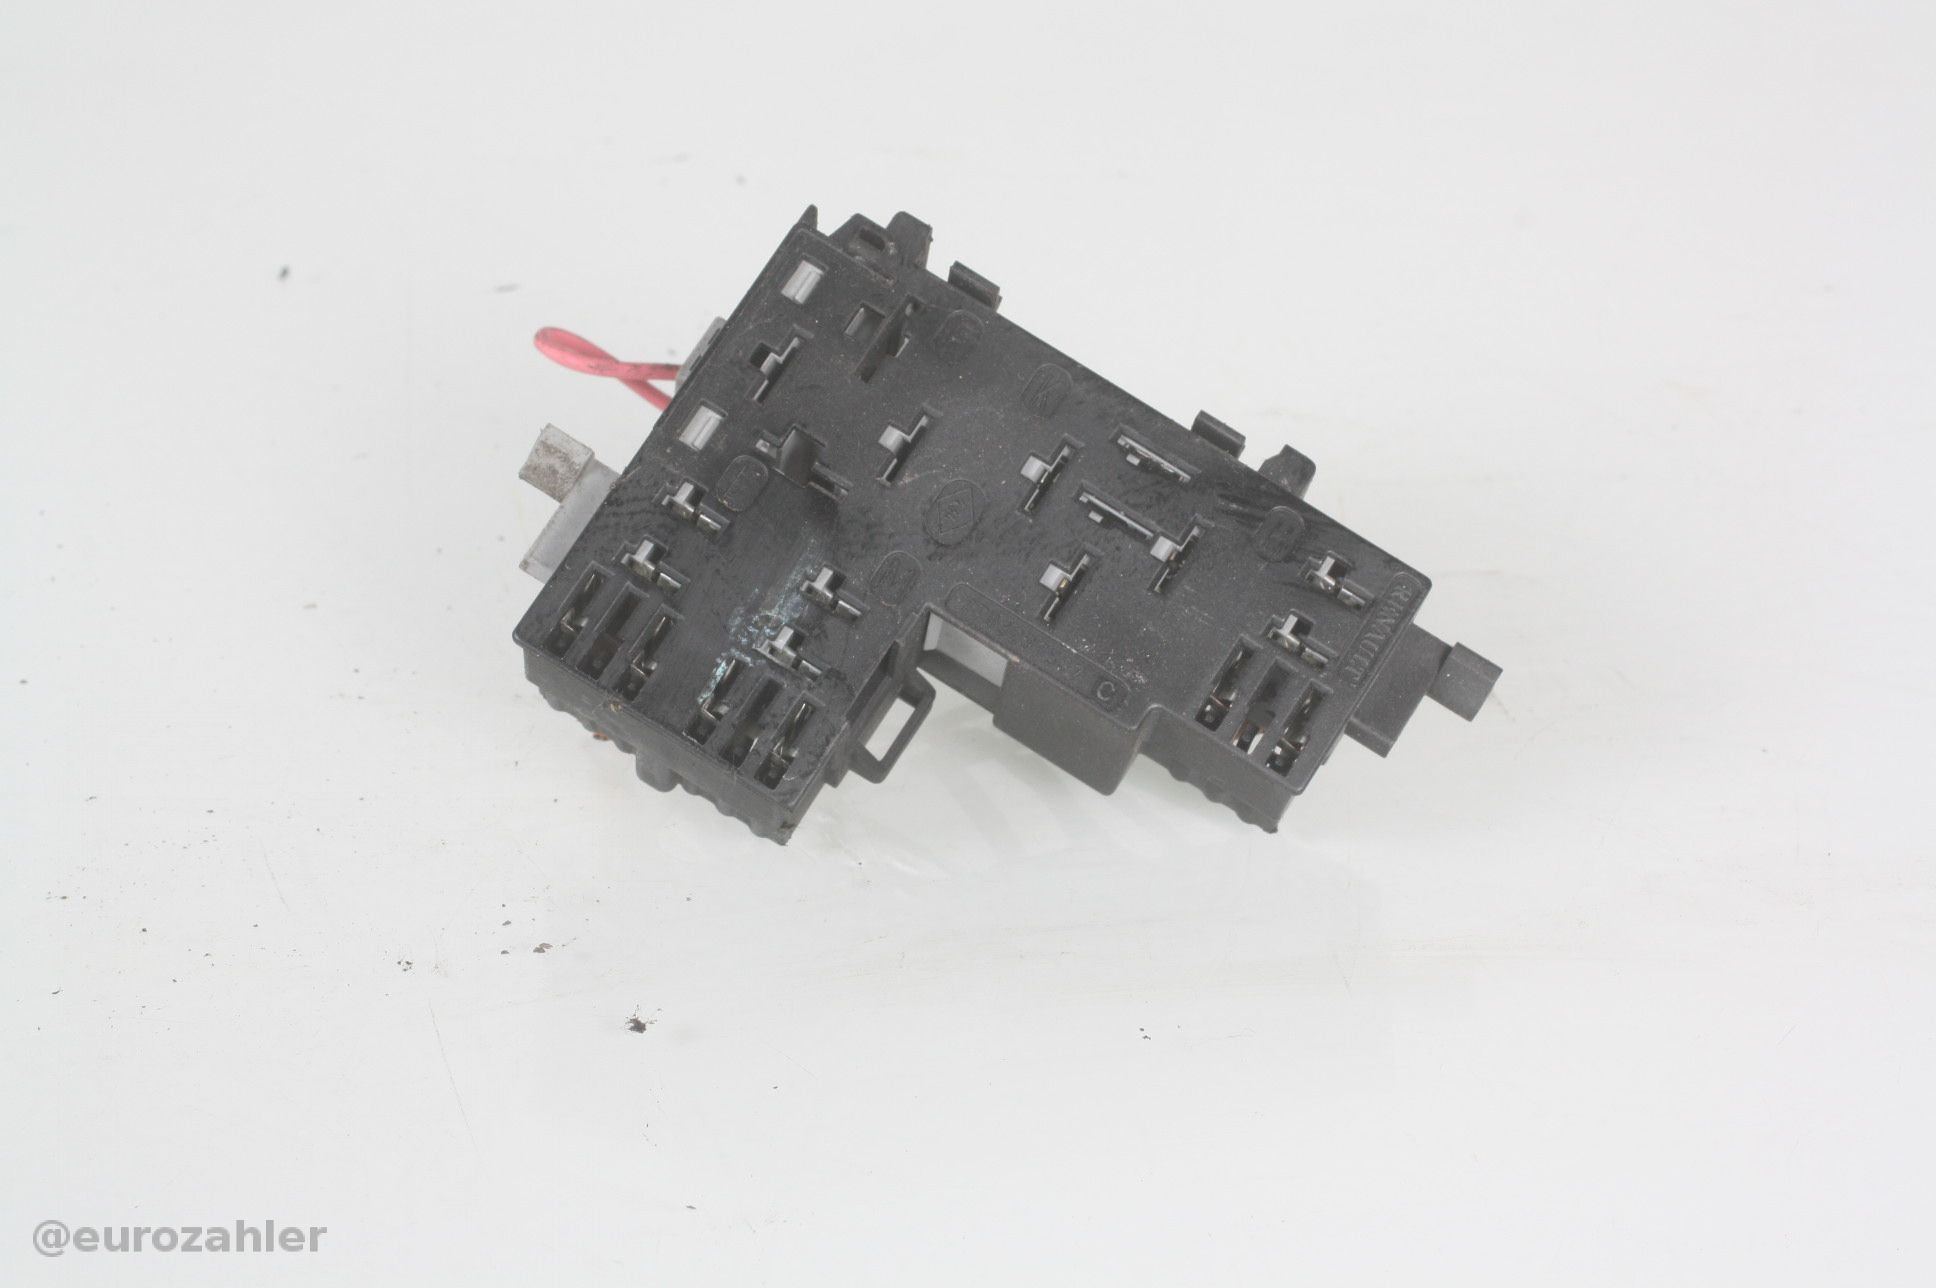 renault scenic fuse box problems aaa renault clio fuse box problem wiring resources  aaa renault clio fuse box problem